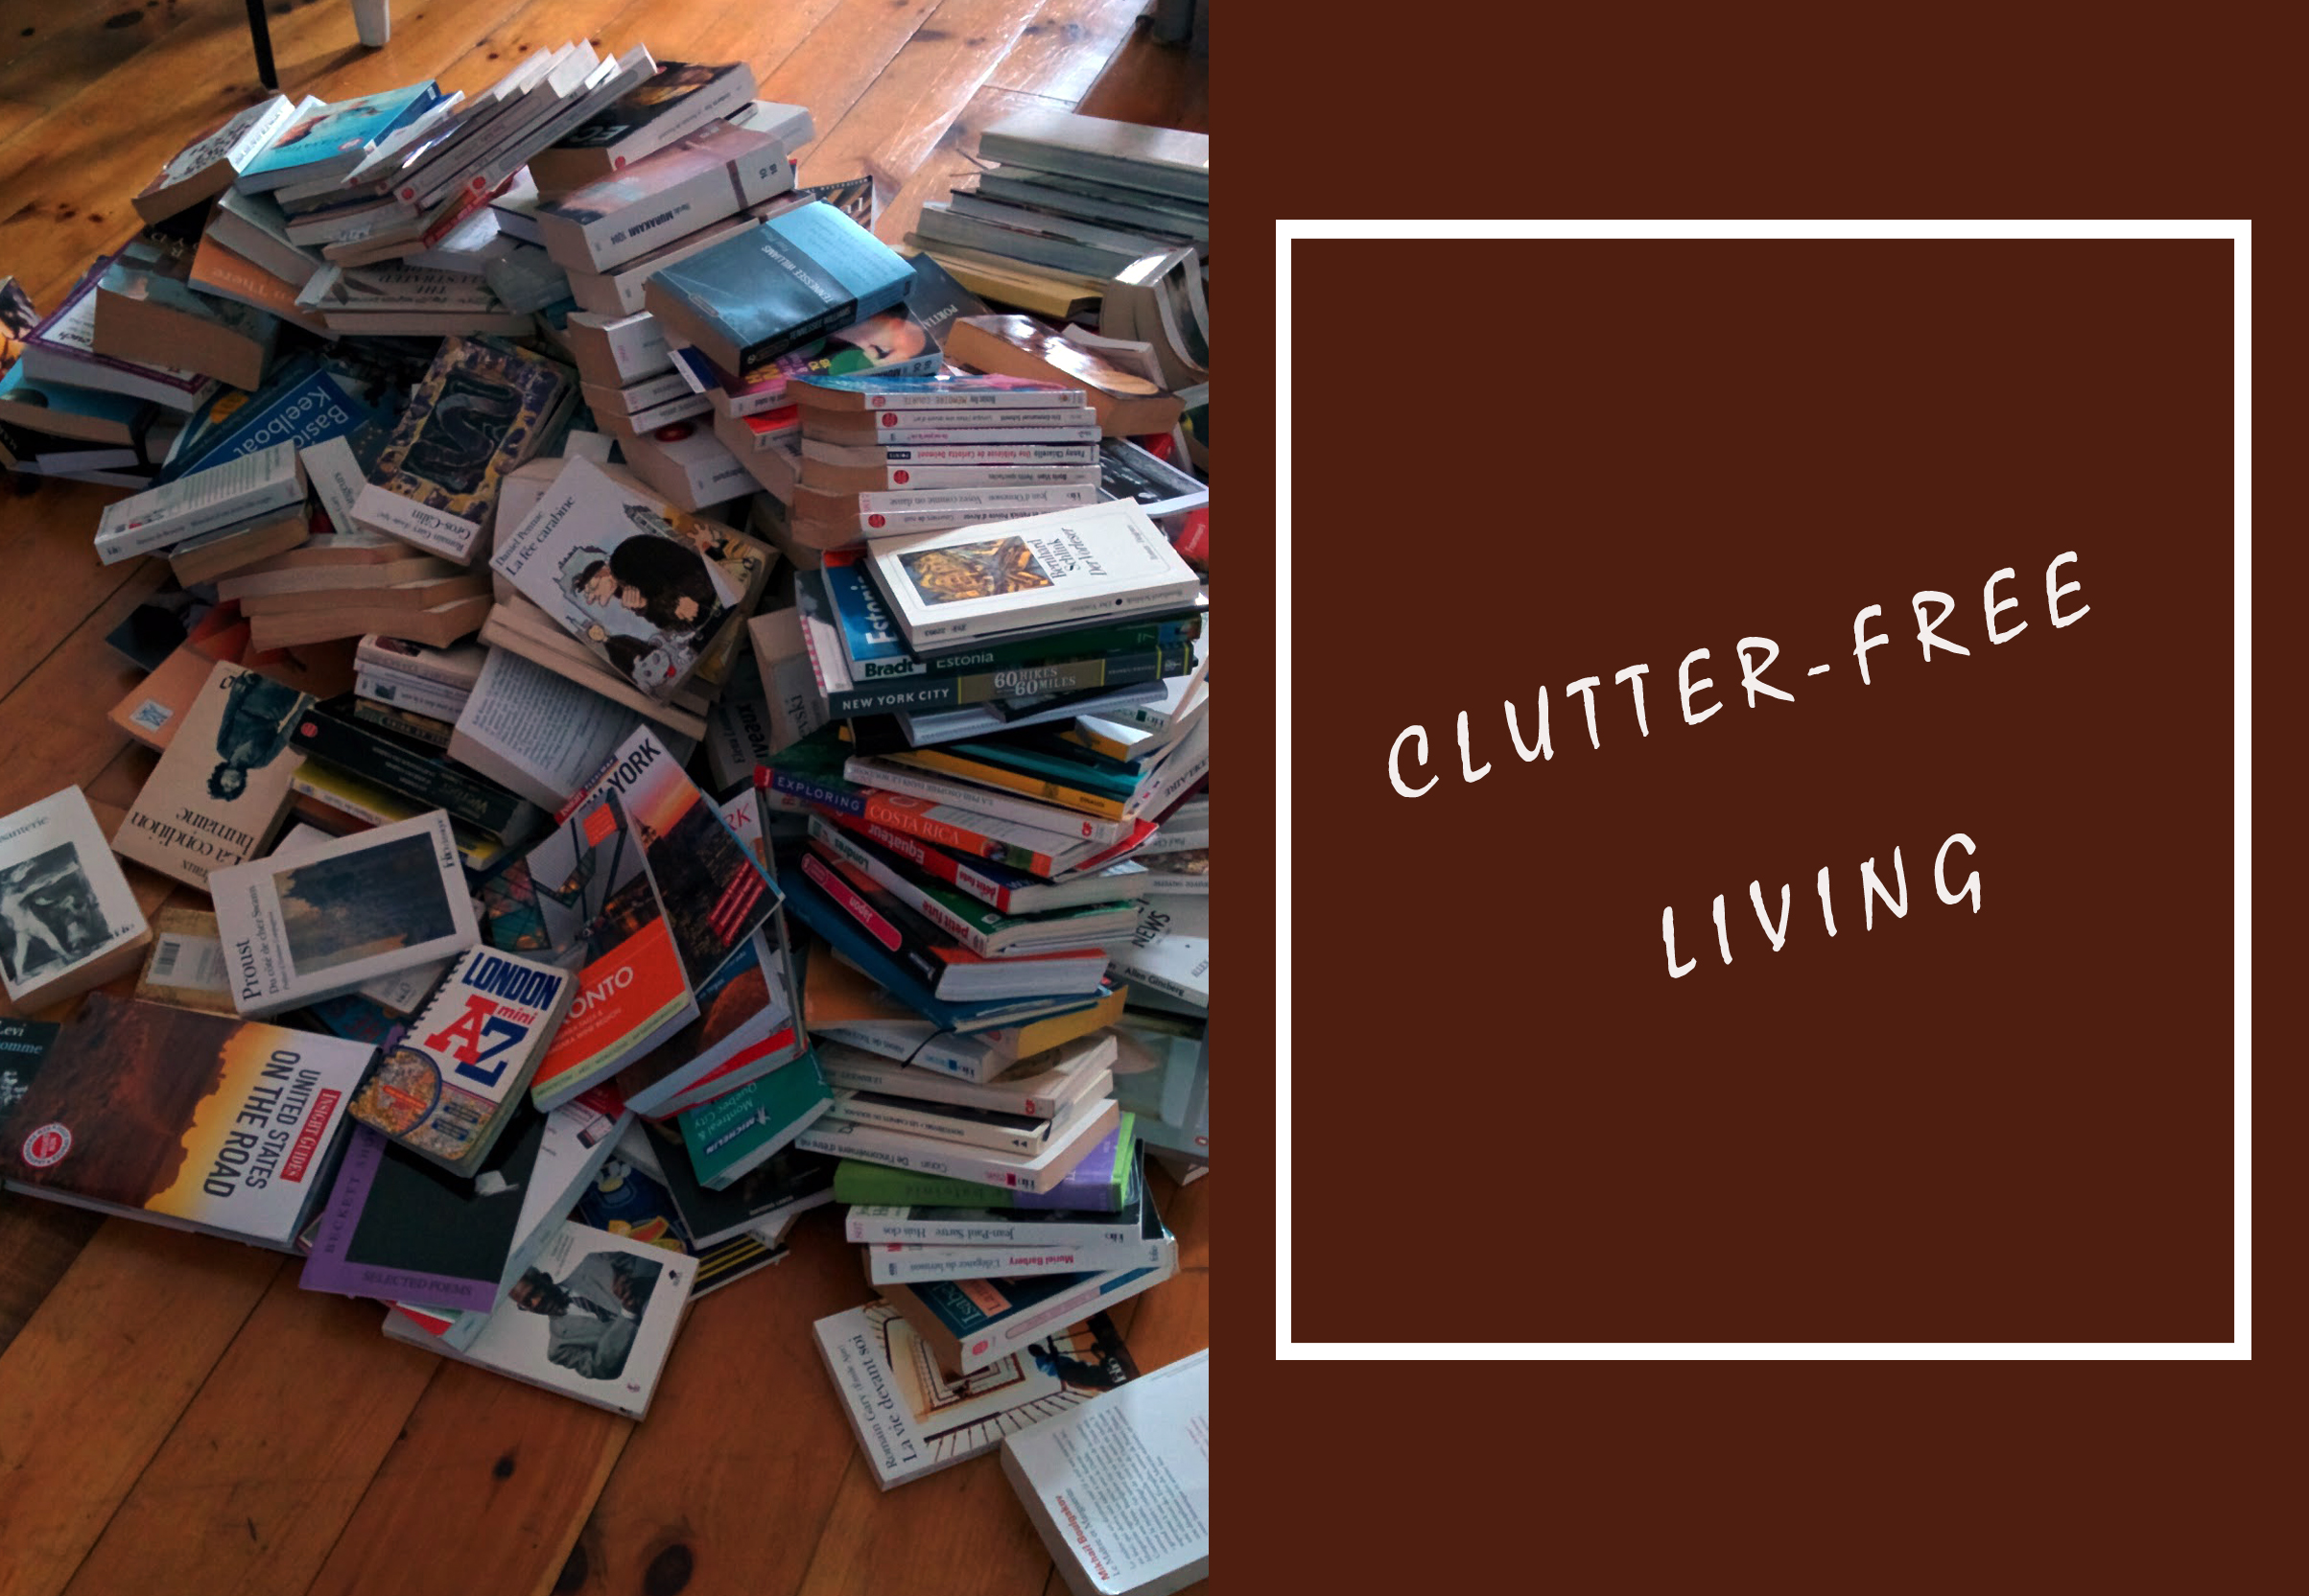 Clutter-clearing